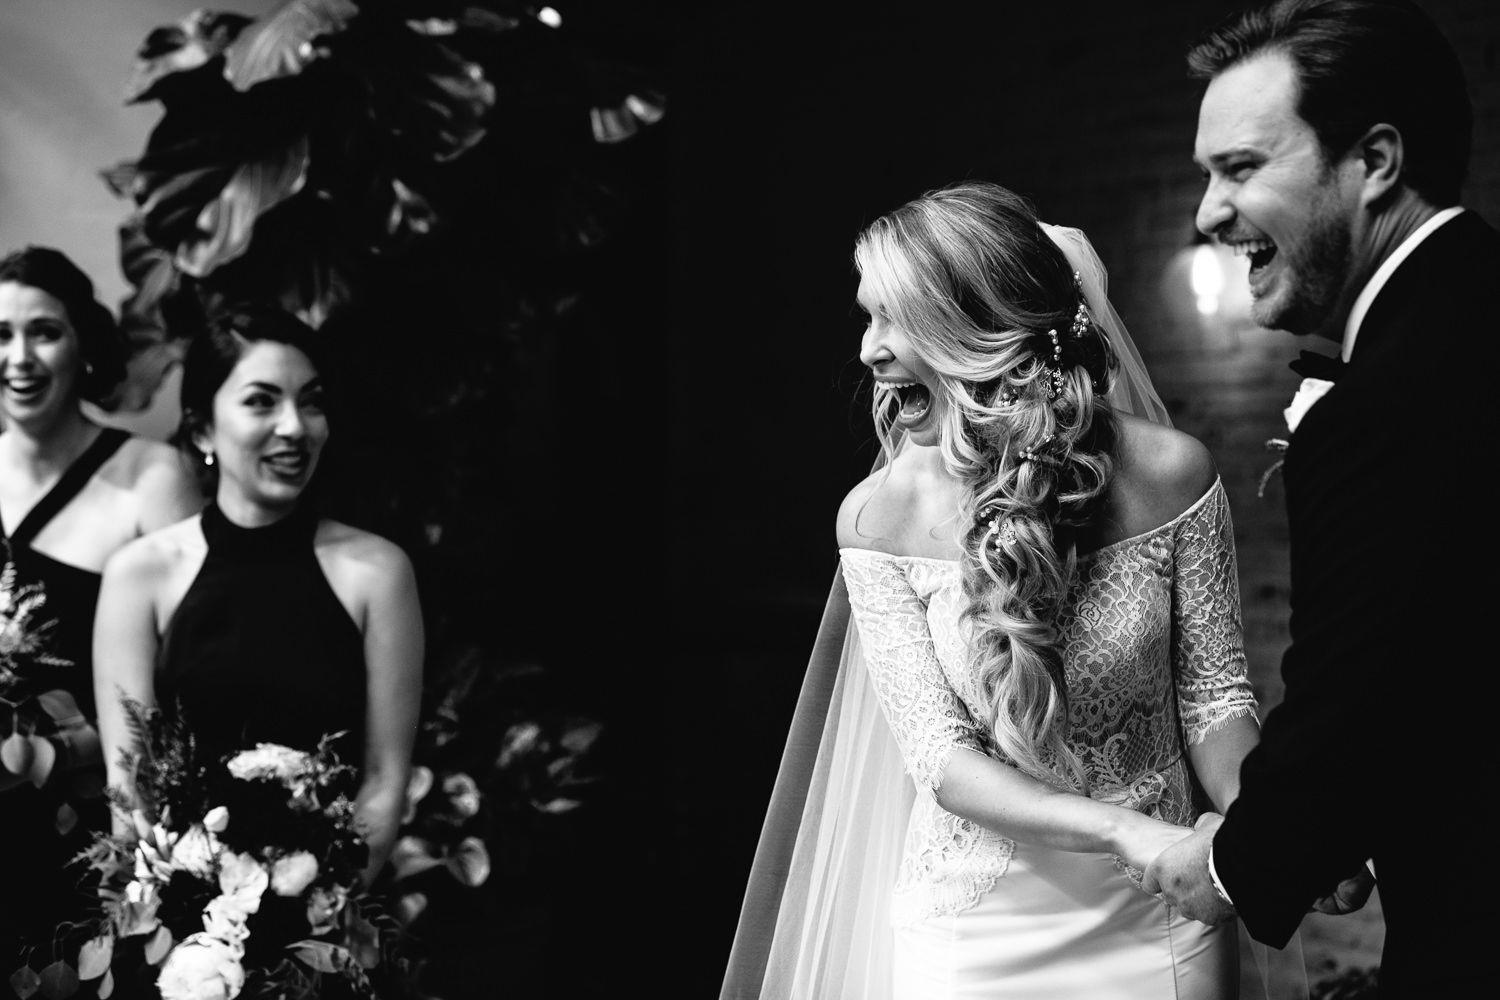 Ebell Long Beach Wedding - Laughing together in the ceremony